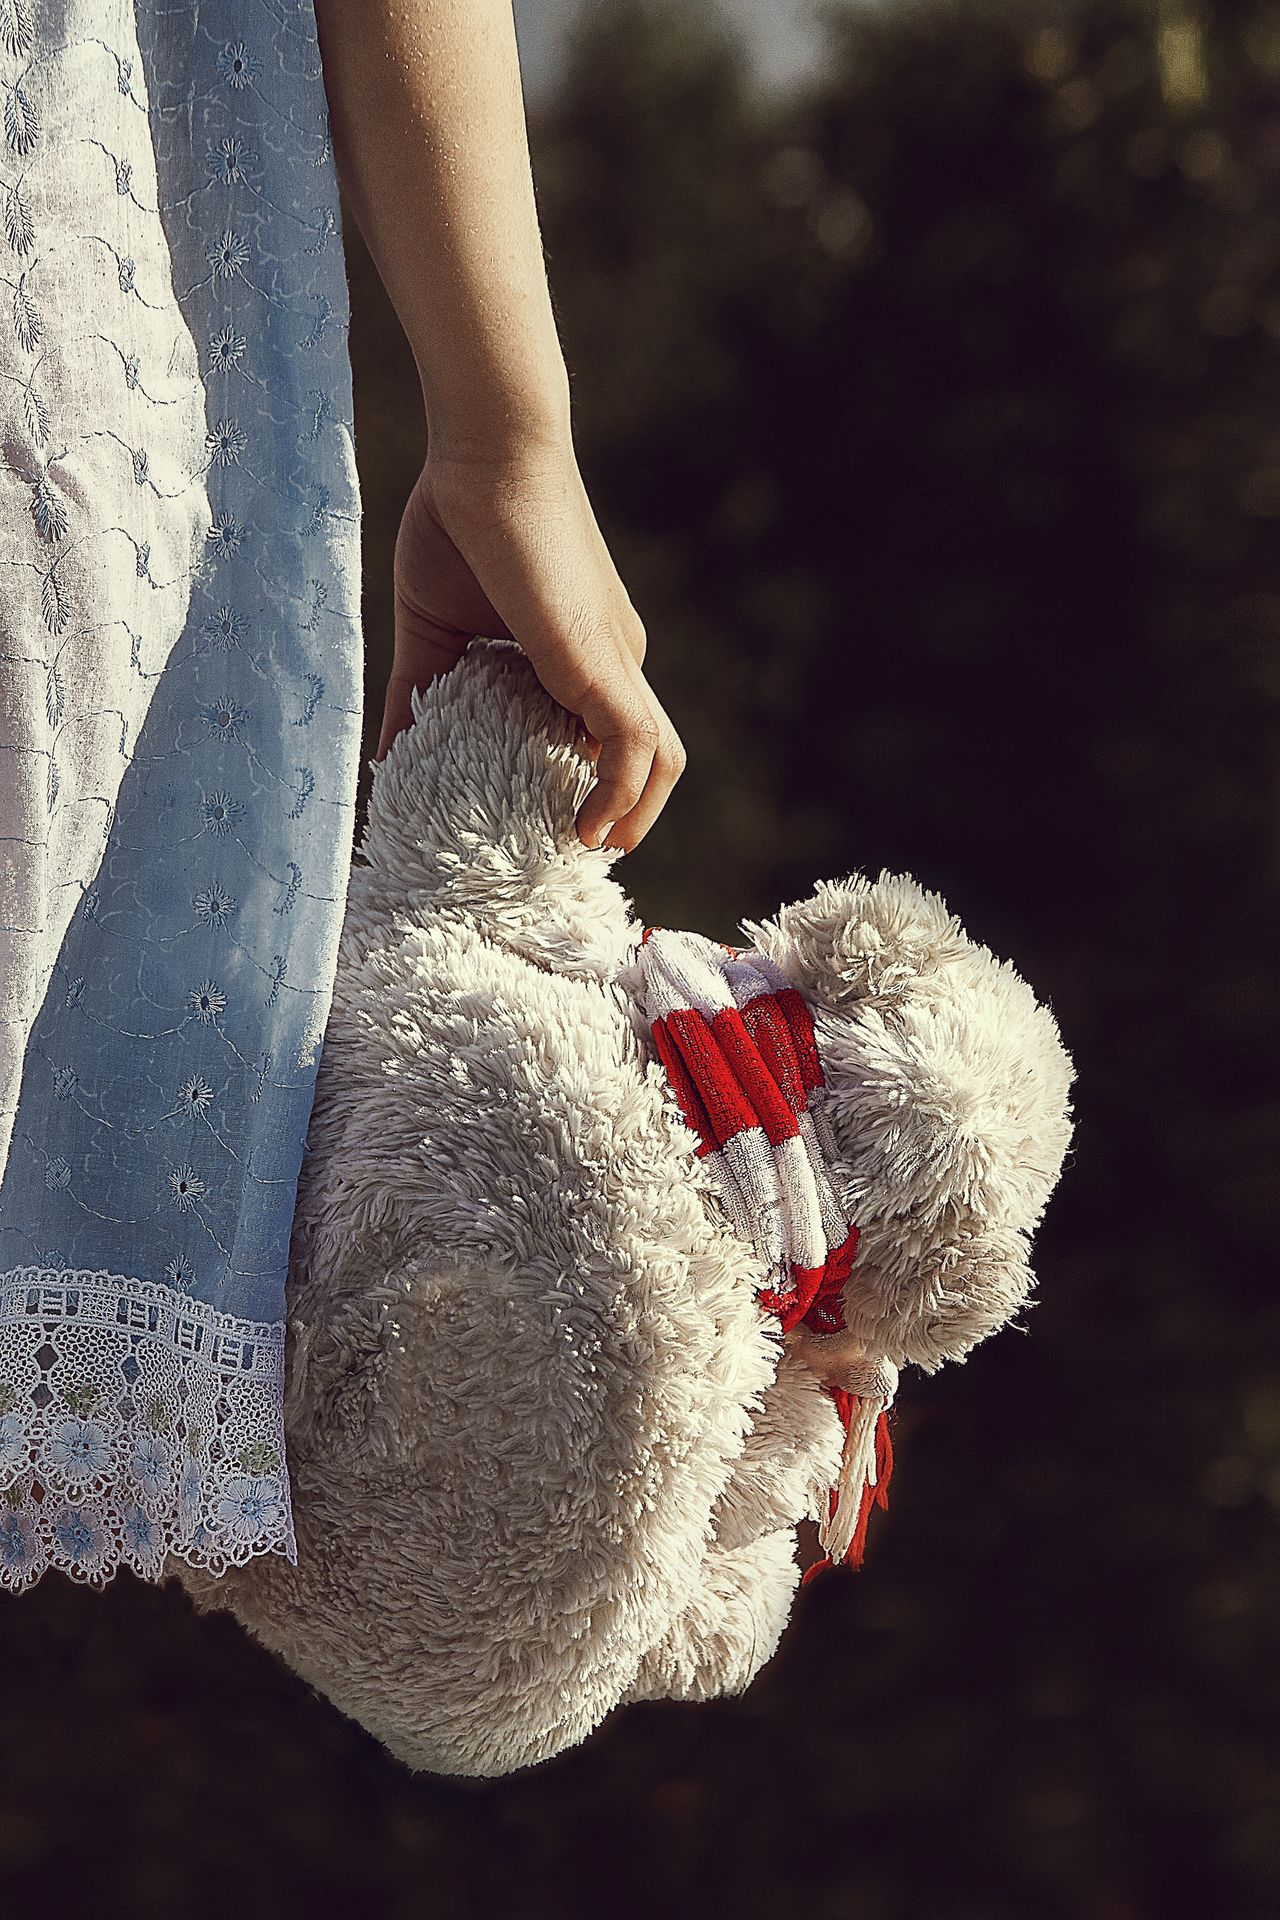 Russia Human Hand Human Body Part One Person Childhood Toy Stuffed Toy Holding Eyebrow Girl Teddy Bear Focus On Foreground Day Lifestyles Close-up Outdoors People Adult Adults Only